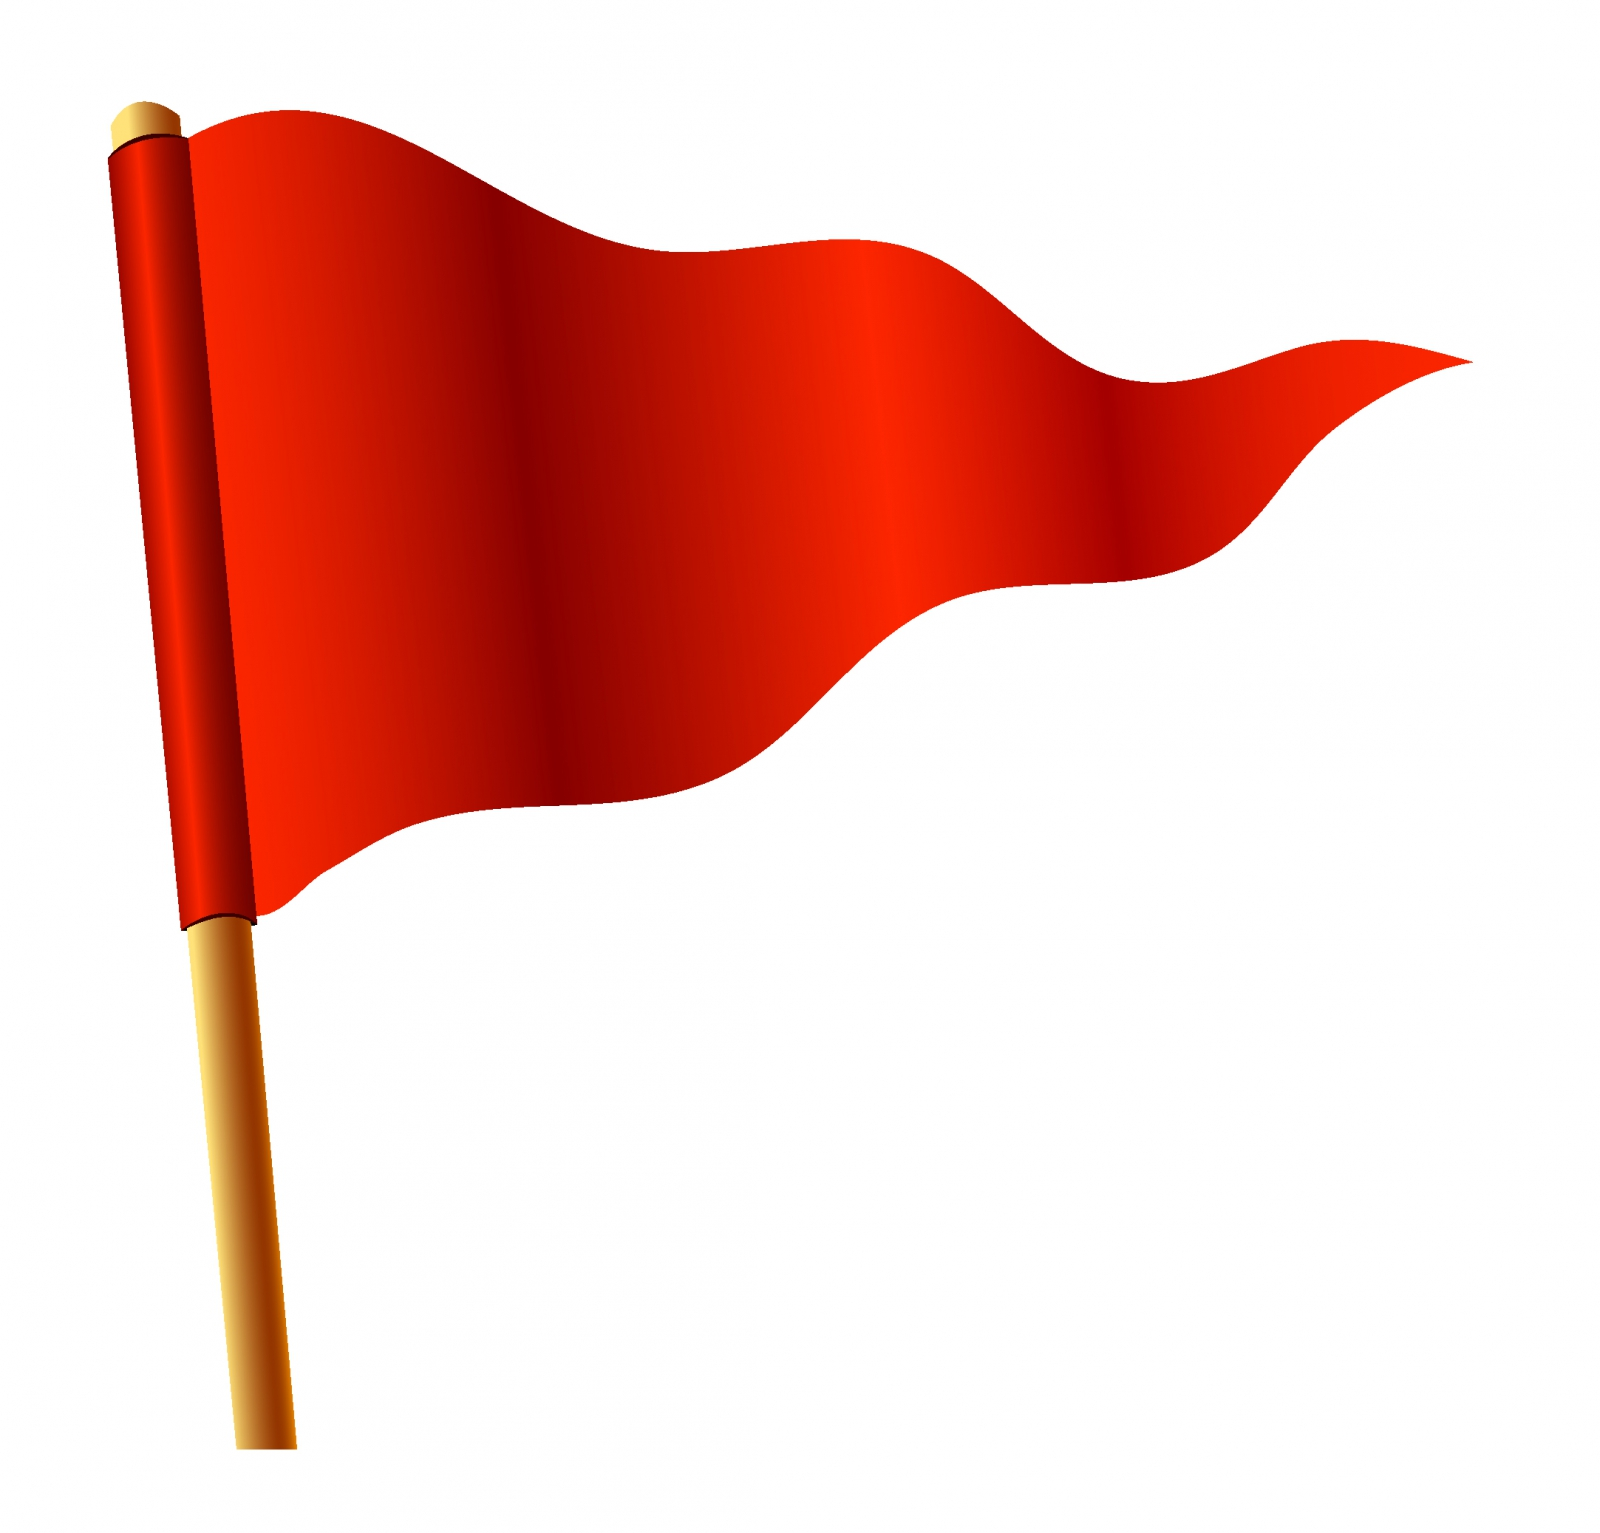 Waving red triangular flag free vector - PNG Triangle Flag